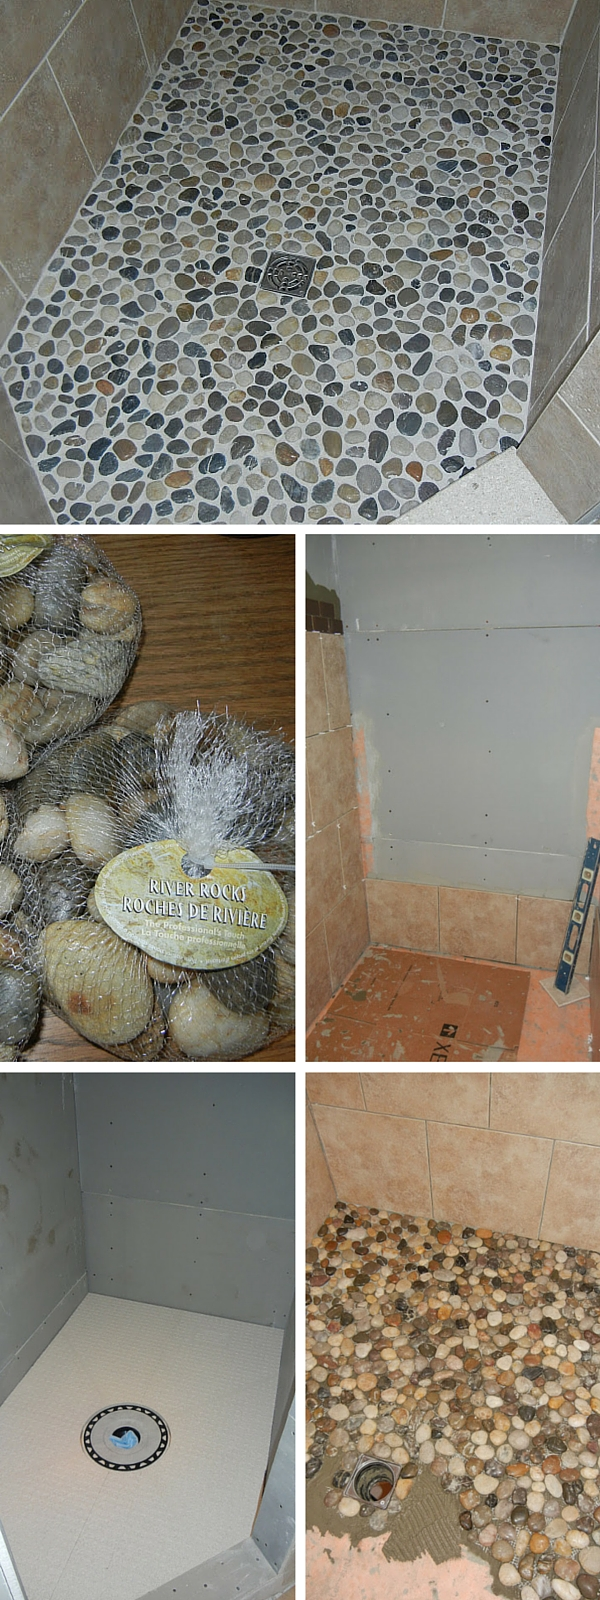 #DIY Pebble Tiling #bathroomdecor